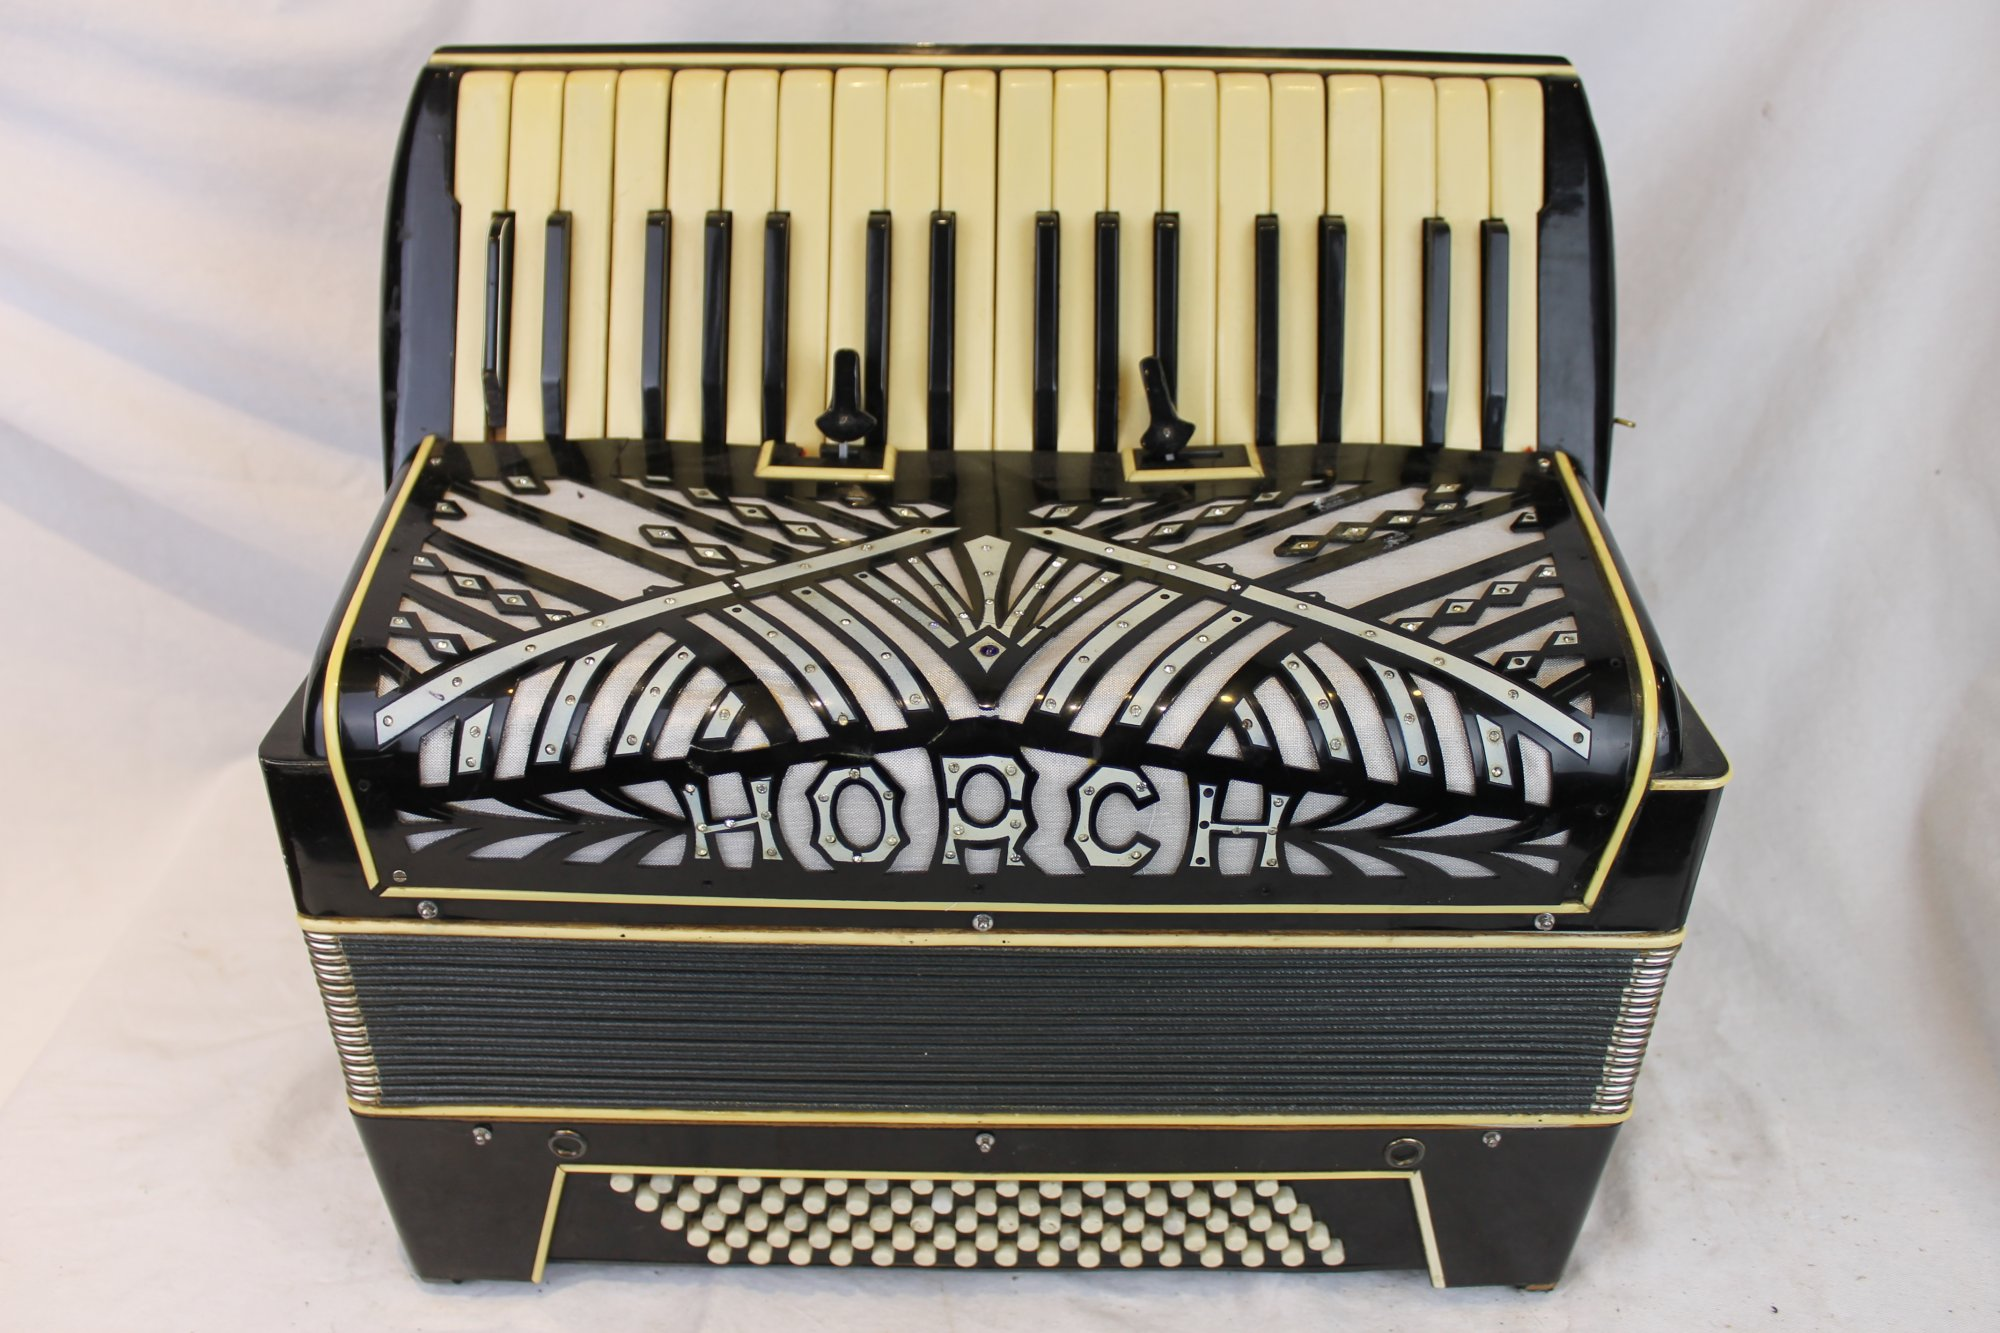 6144 - Black Horch Piano Accordion LMM 34 80 - For Parts or Repair